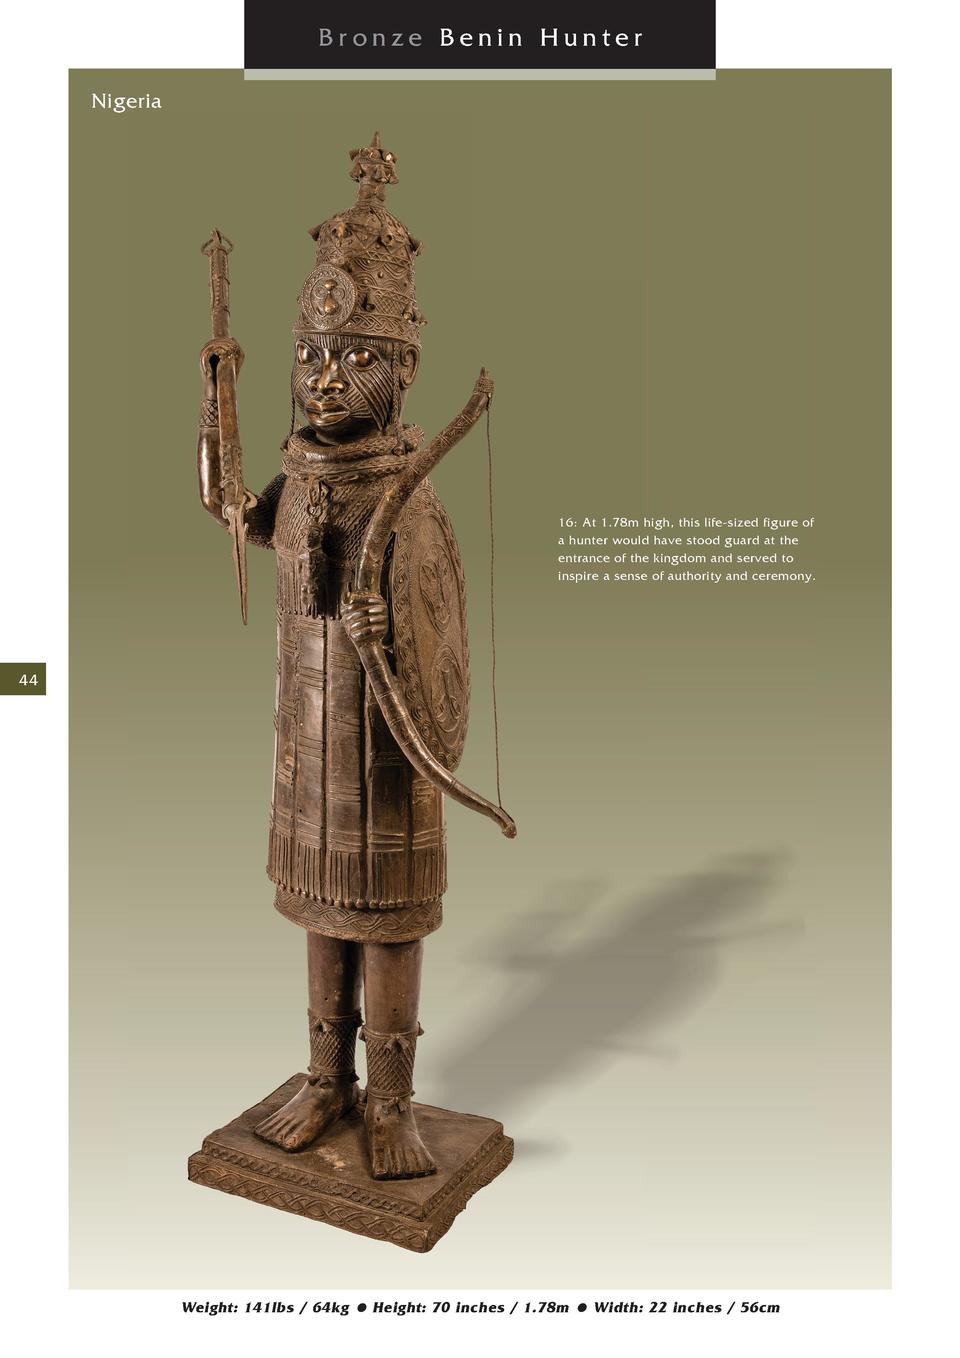 Bronze Benin Hunter Nigeria  16  At 1.78m high, this life-sized figure of a hunter would have stood guard at the entrance ...